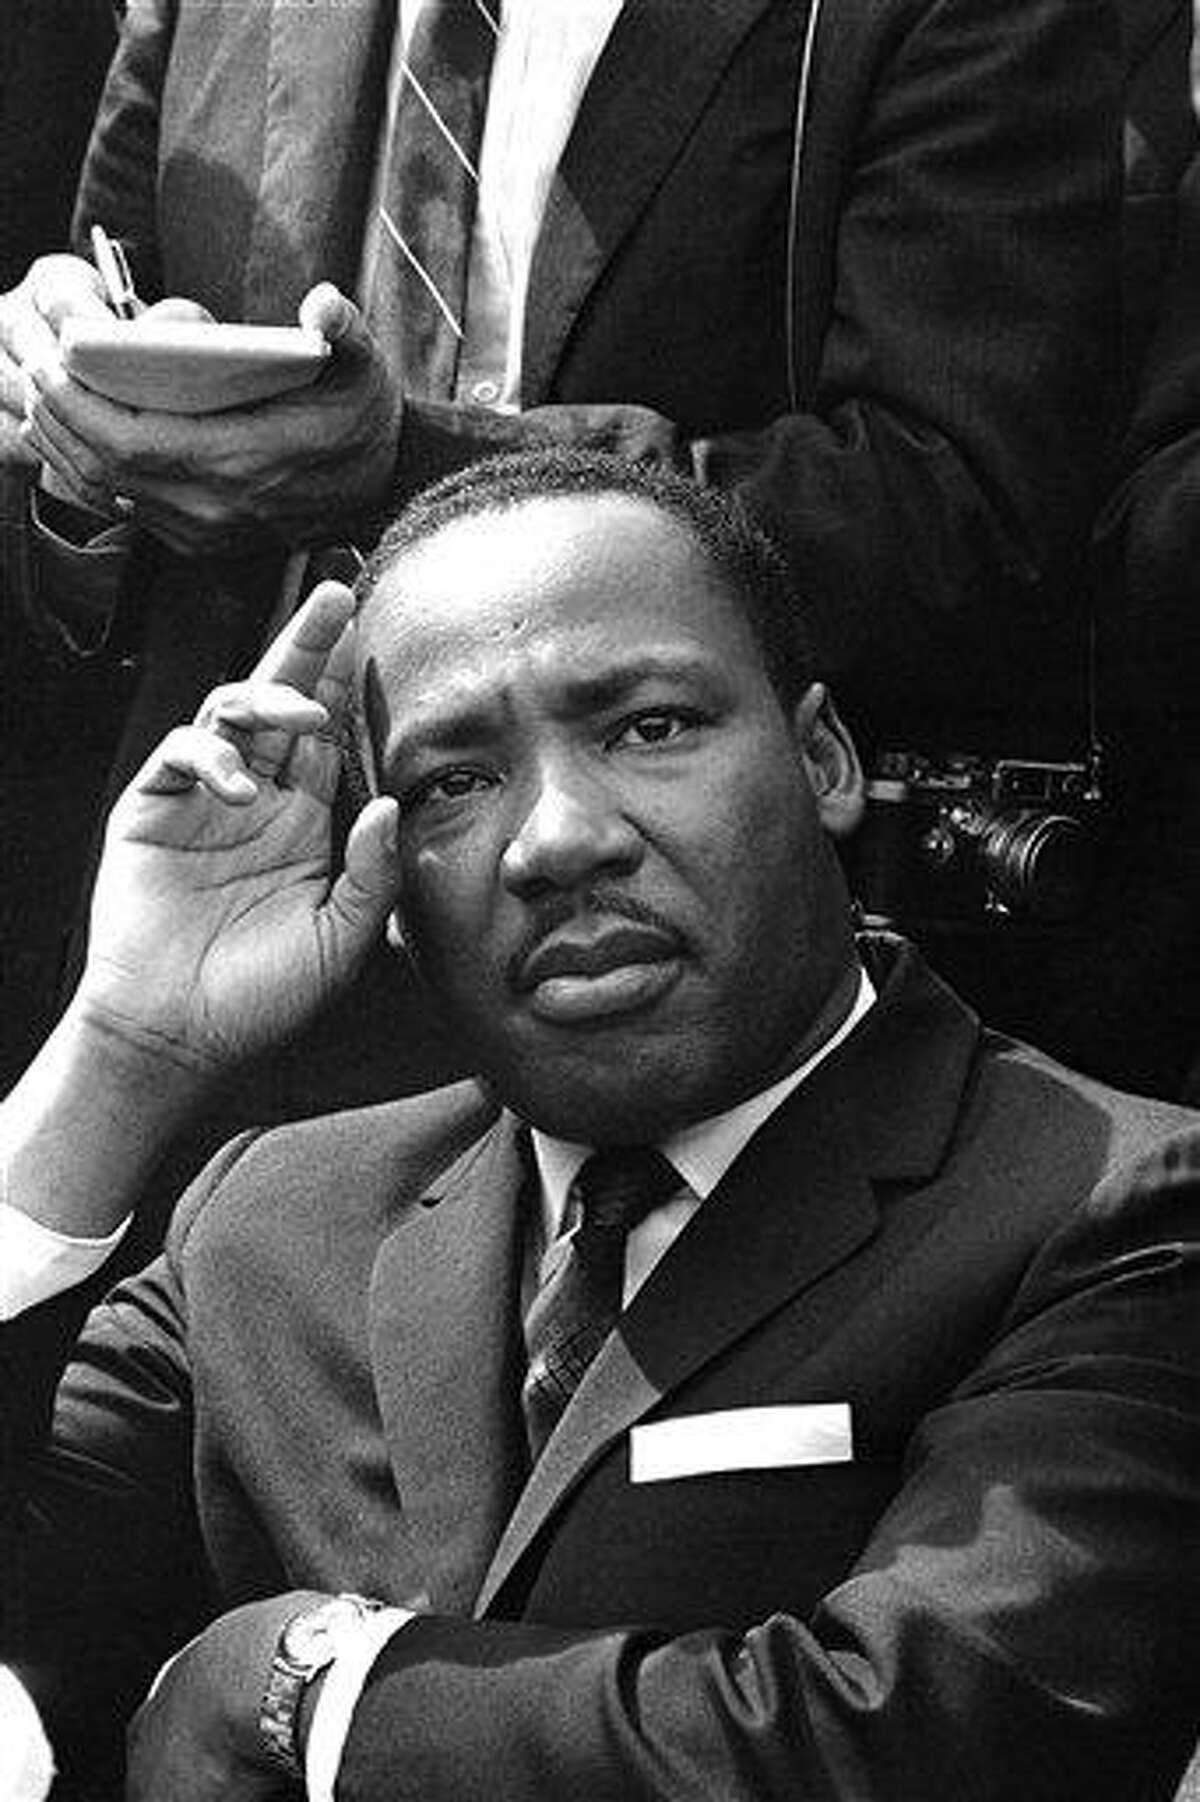 FILE - In this Sept. 16, 1963 file photo, Dr. Martin Luther King Jr. gives a news conference in Birmingham, Ala., announcing he and other African-American leaders have called for federal Army occupation of Birmingham in the wake of the previous day's church bombing and shootings which left six black people dead. (AP Photo/File)